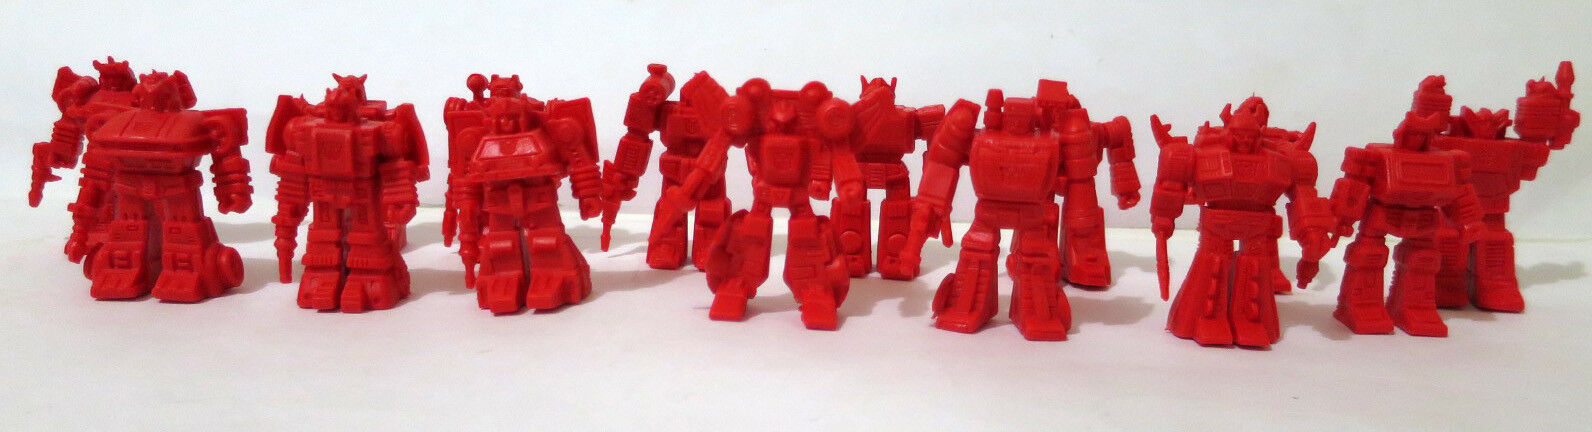 Lot of 15 Vintage Transformers Keshi Gomu figures Japan '80s Takara G1 Japanese